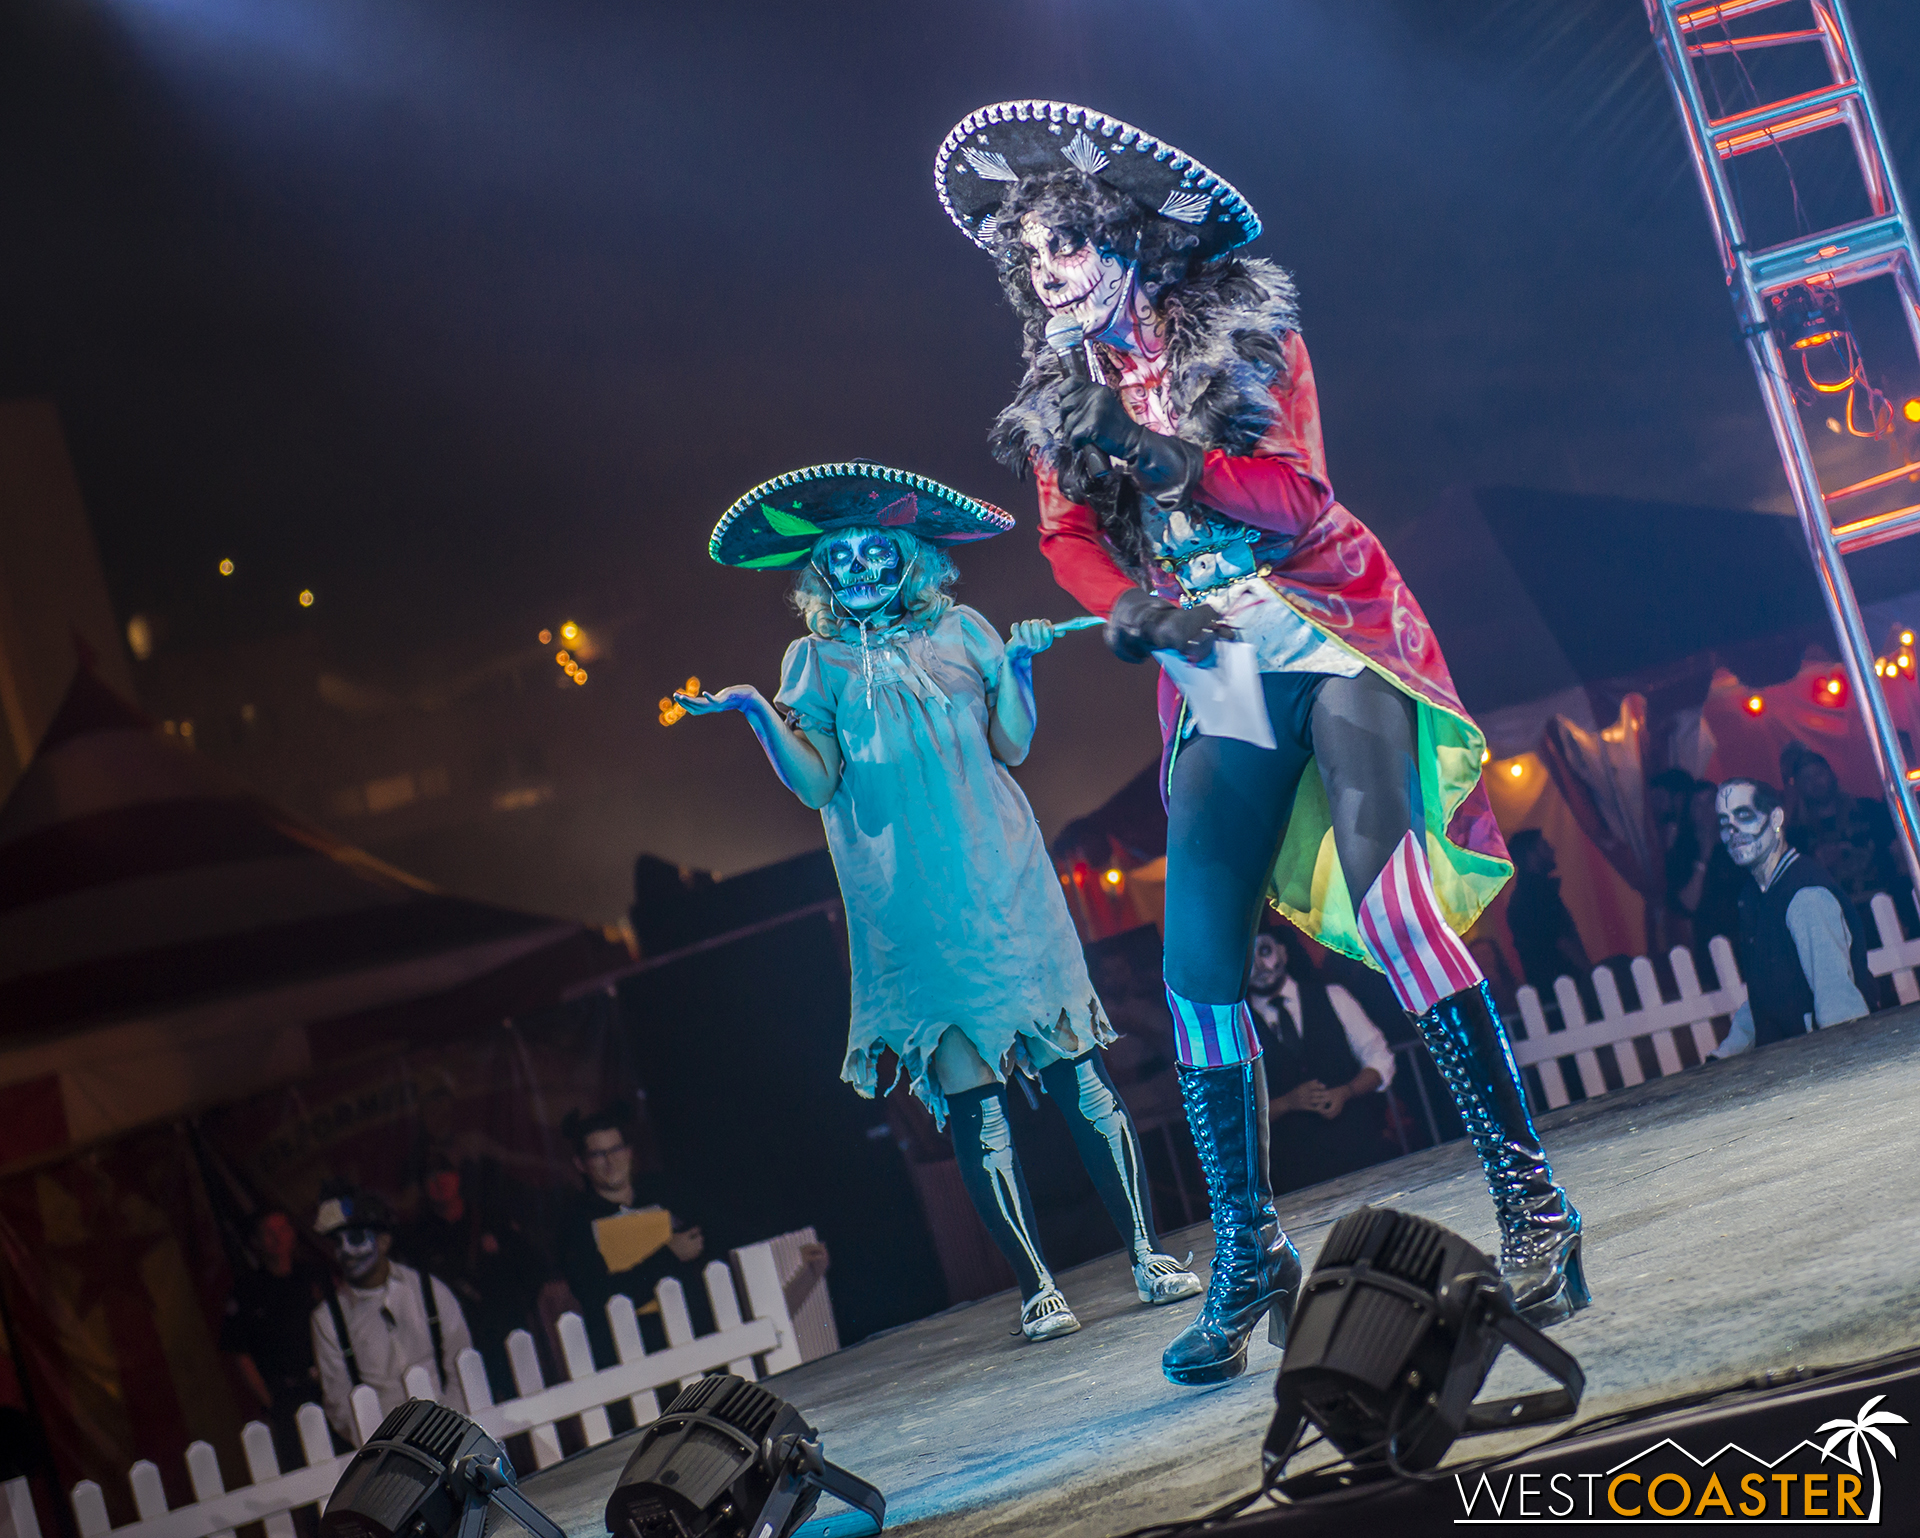 The Ringmaster was primary emcee, with Scary Mary assisting with the contestants on stage.